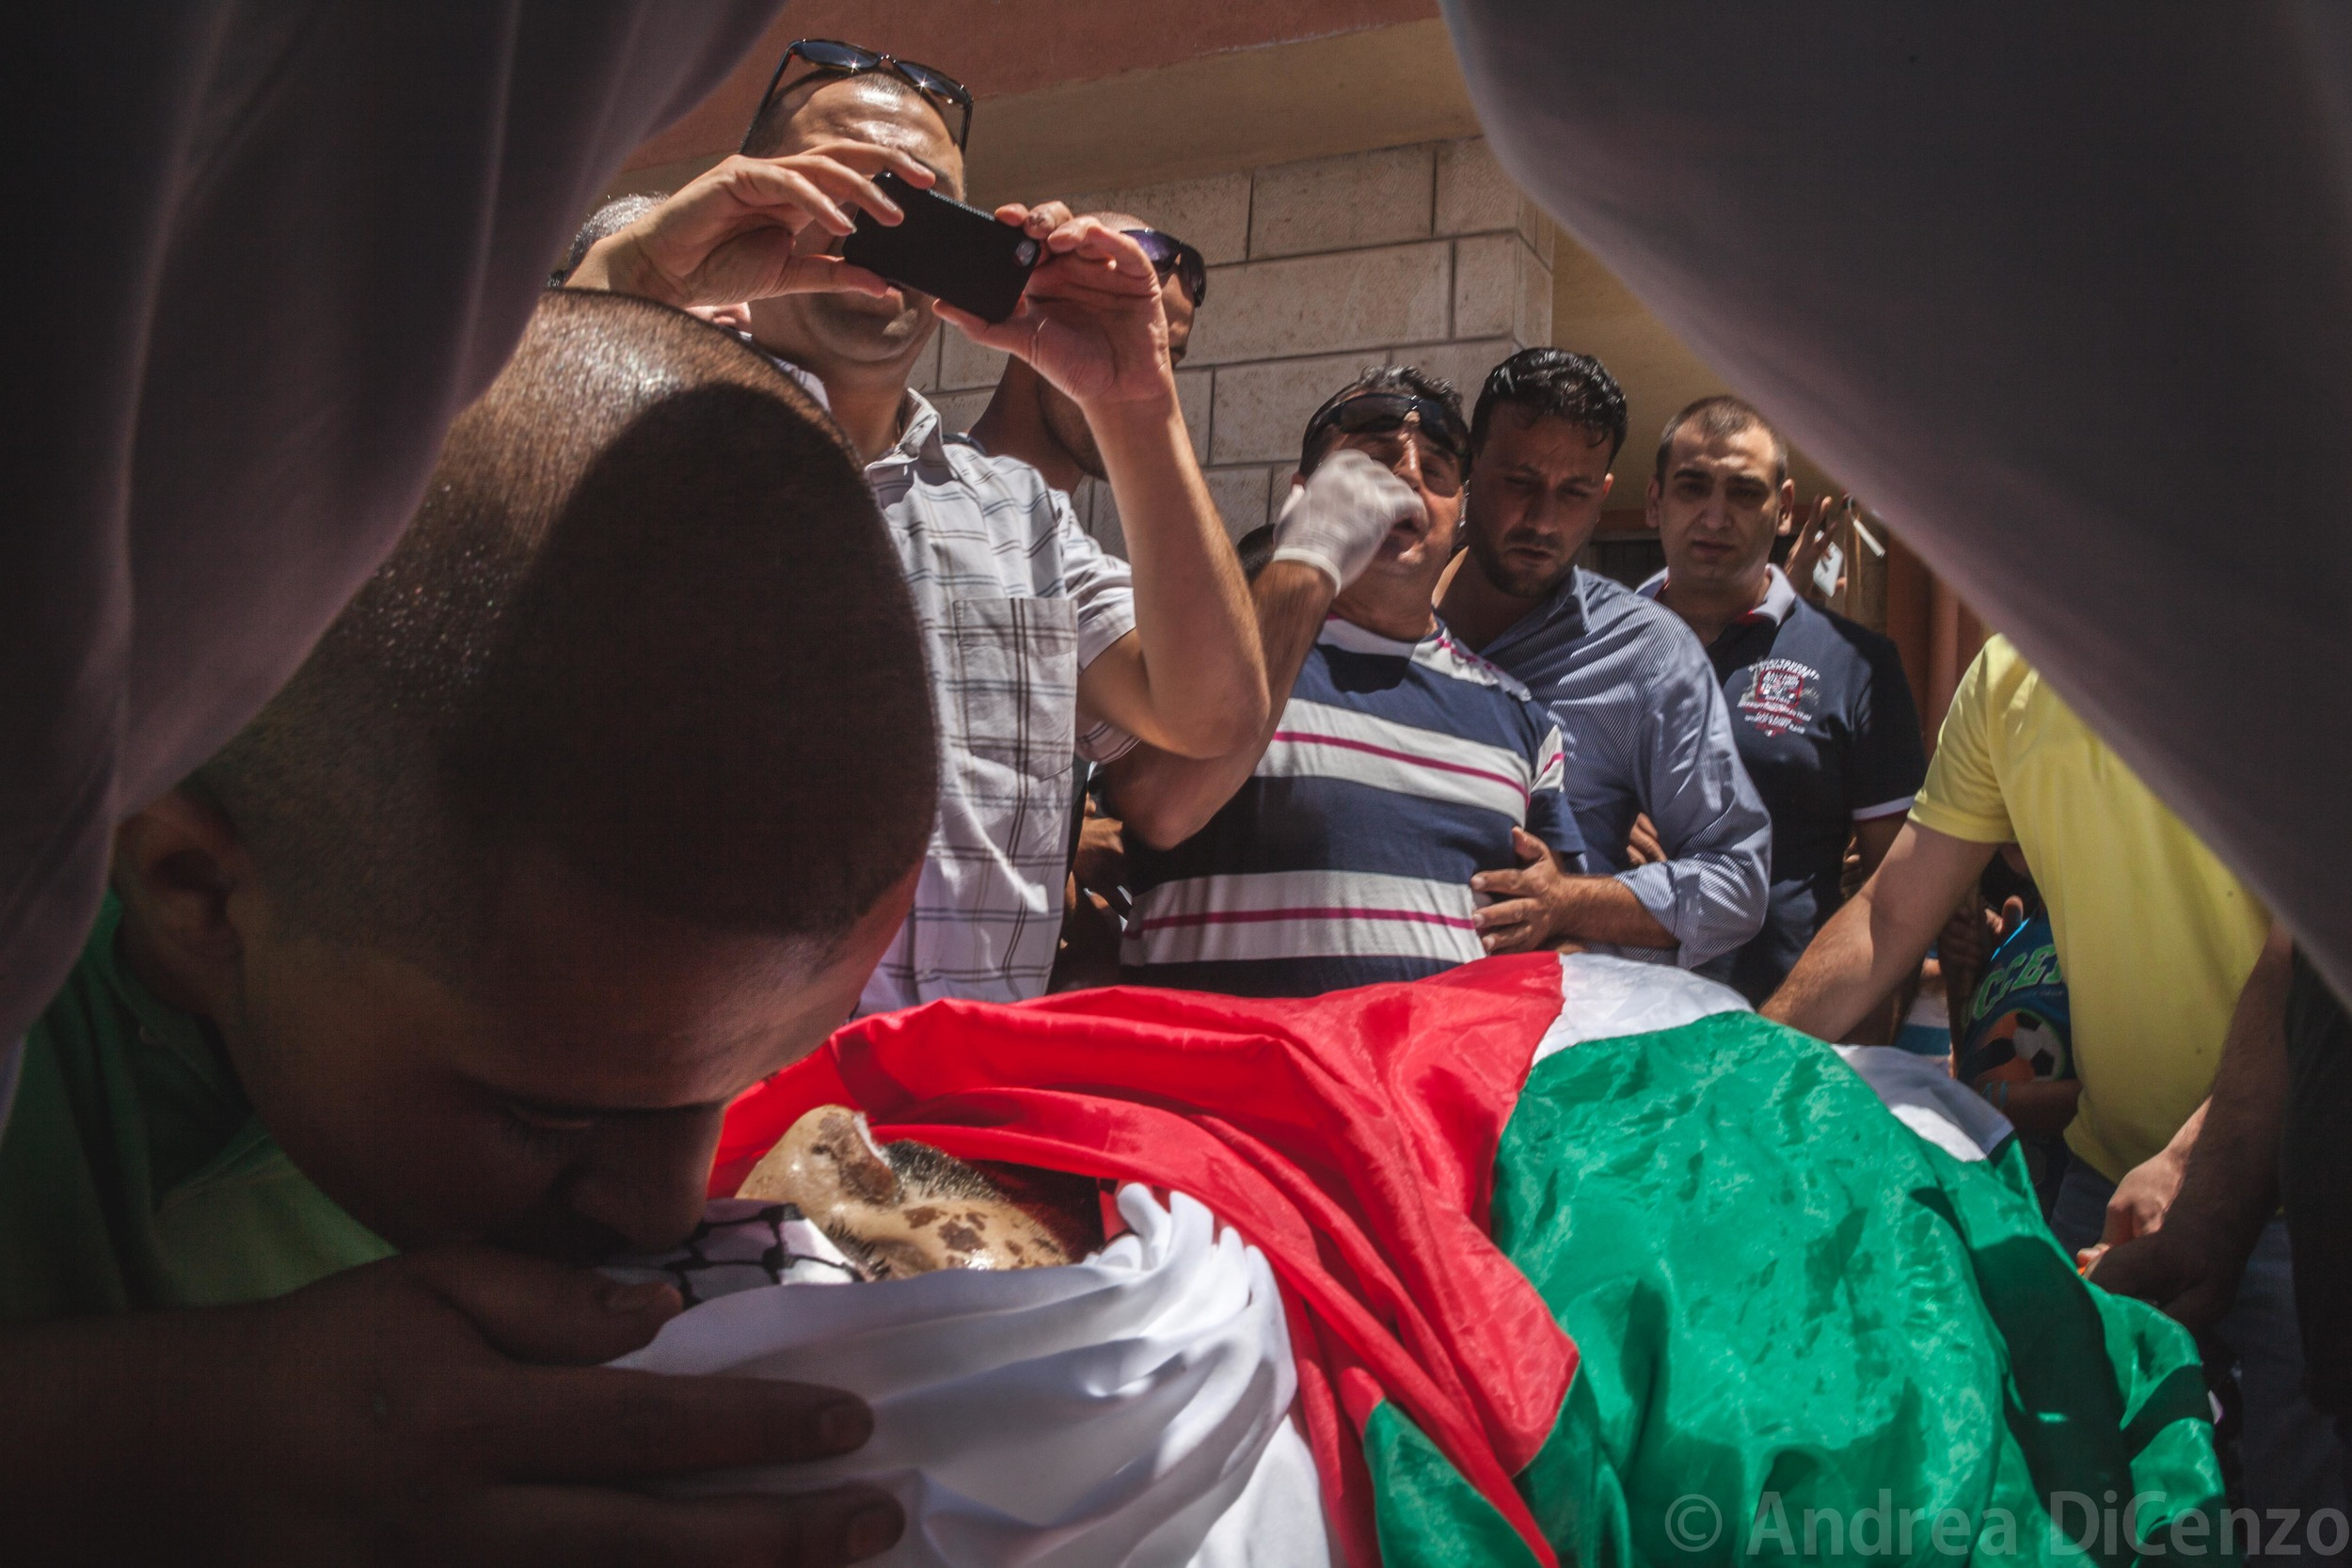 A stranger kisses the body of Mohammed during a funeral precession in East Jerusalem.Doctors and staff perform a traditional funeral outside Al-Makassed hospital for the funeral of theyoung man from Gaza. He arrived at 3am earlier in the day but didn't make it through the night.